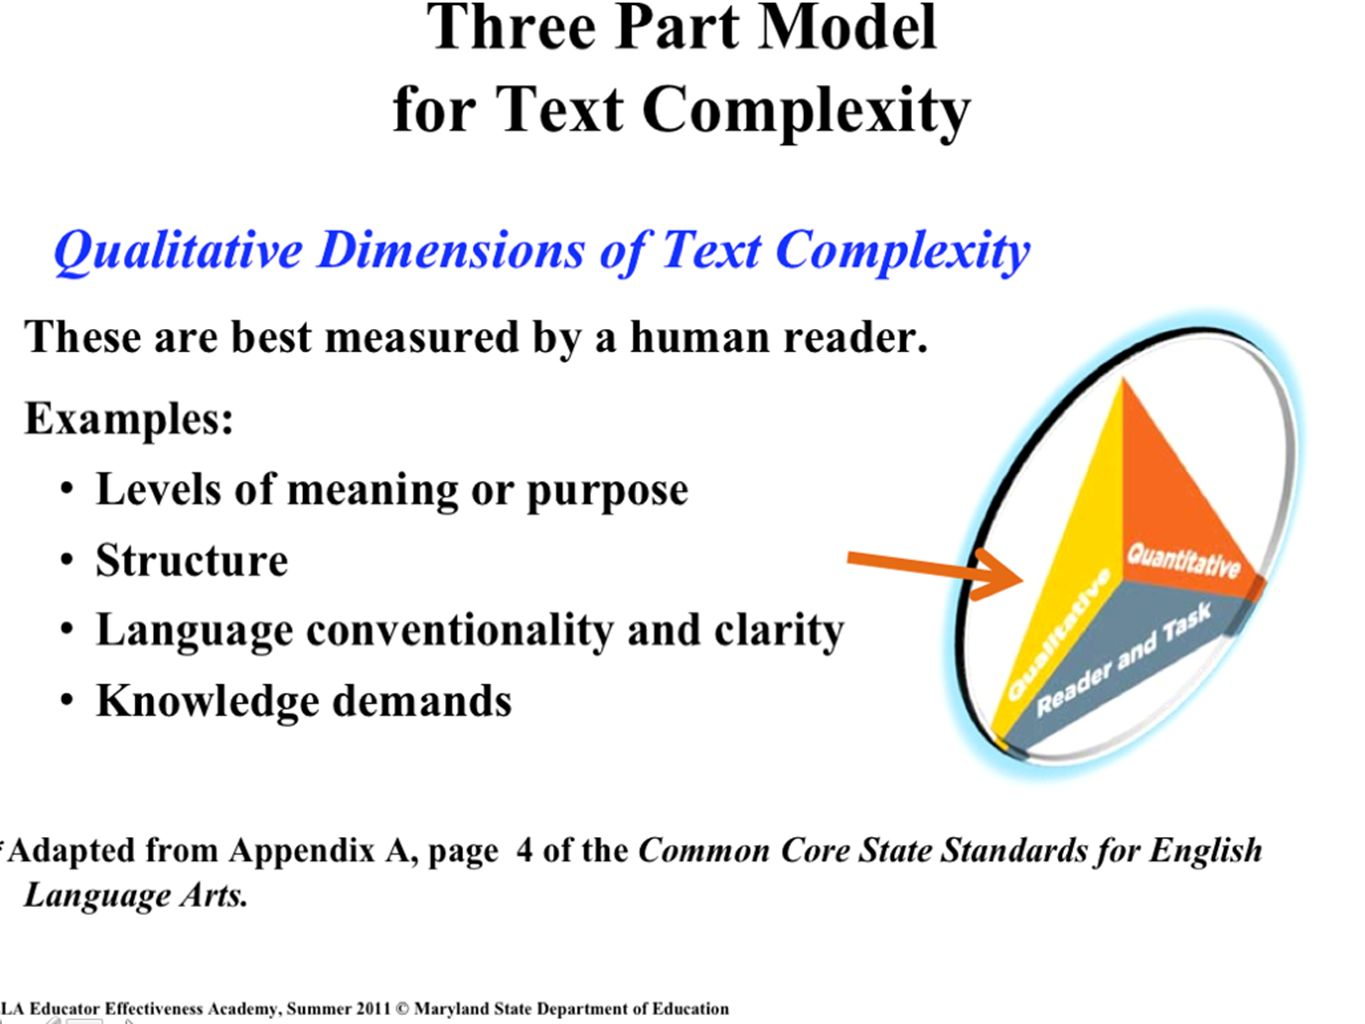 Missouri is developing an extensive rubric teachers can use to evaluate the qualitative measures of a text.